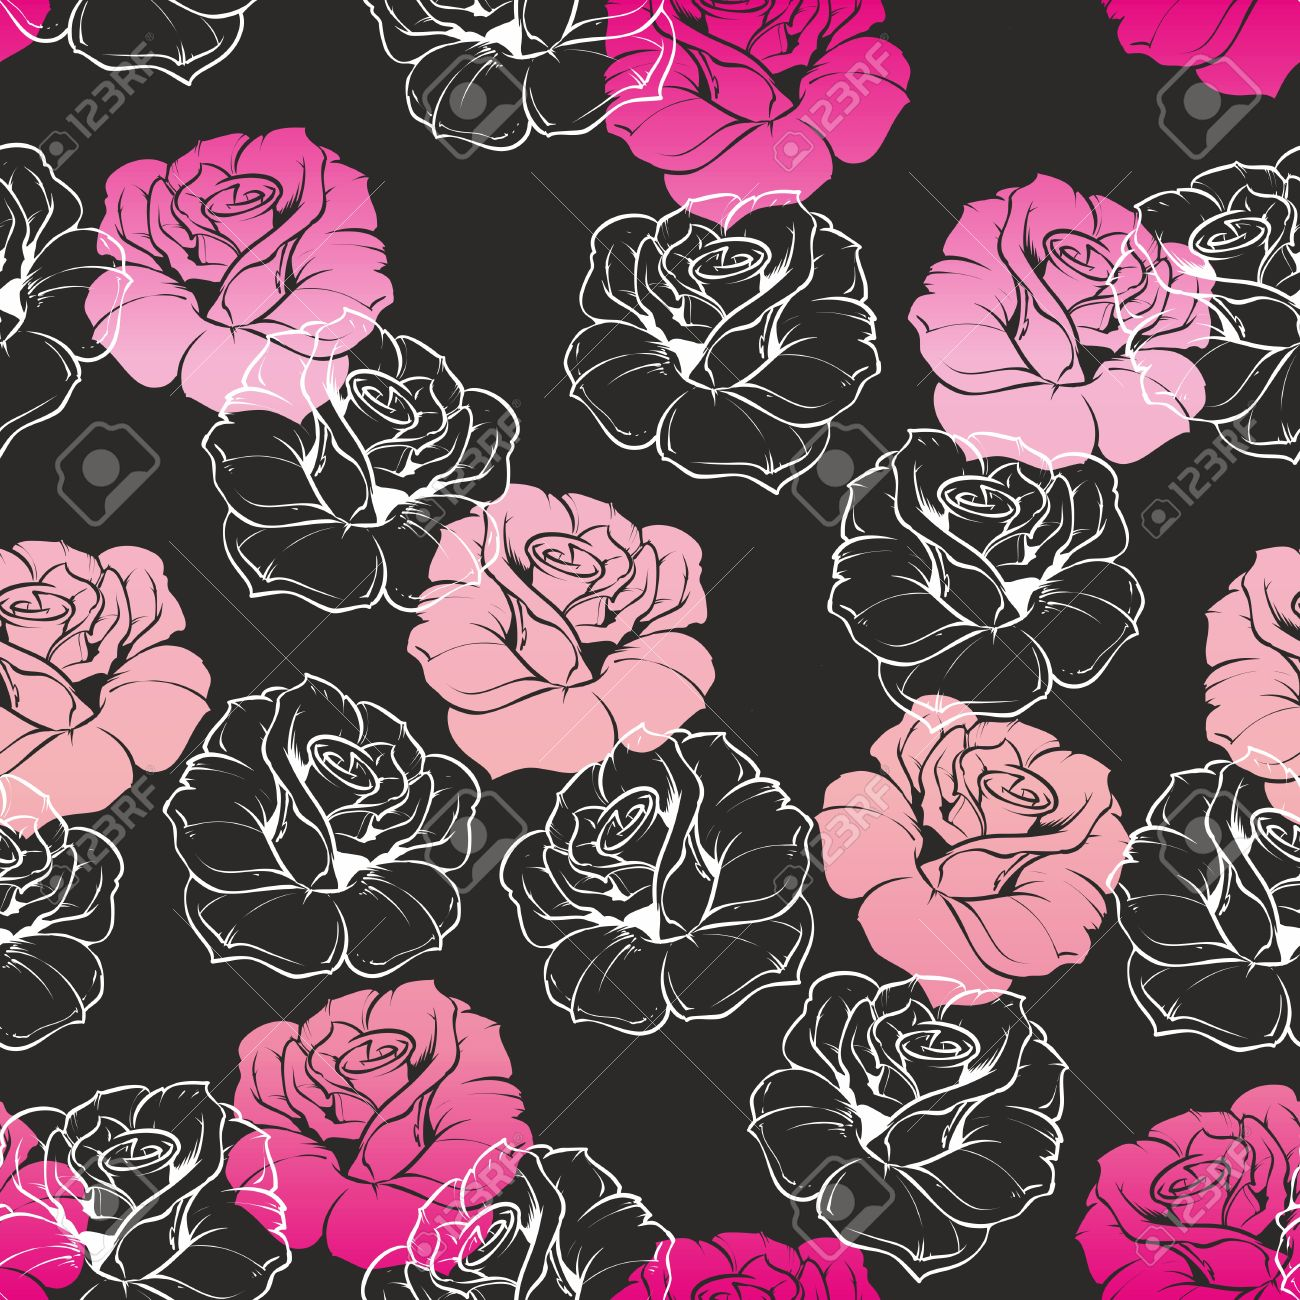 Seamless dark floral vector pattern with pink and white retro seamless dark floral vector pattern with pink and white retro roses on black background beautiful mightylinksfo